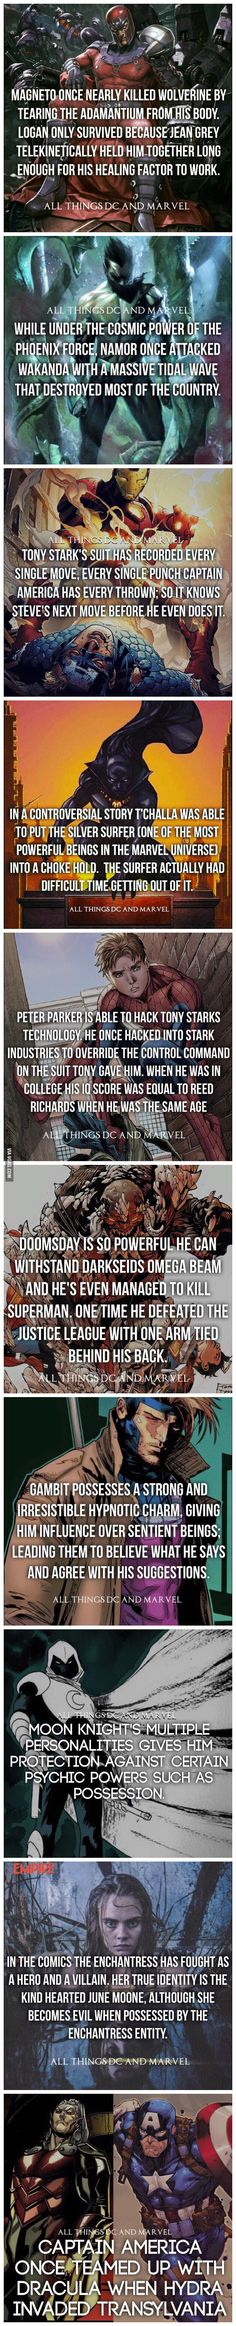 Superhero Facts: Part 4 - 9GAG